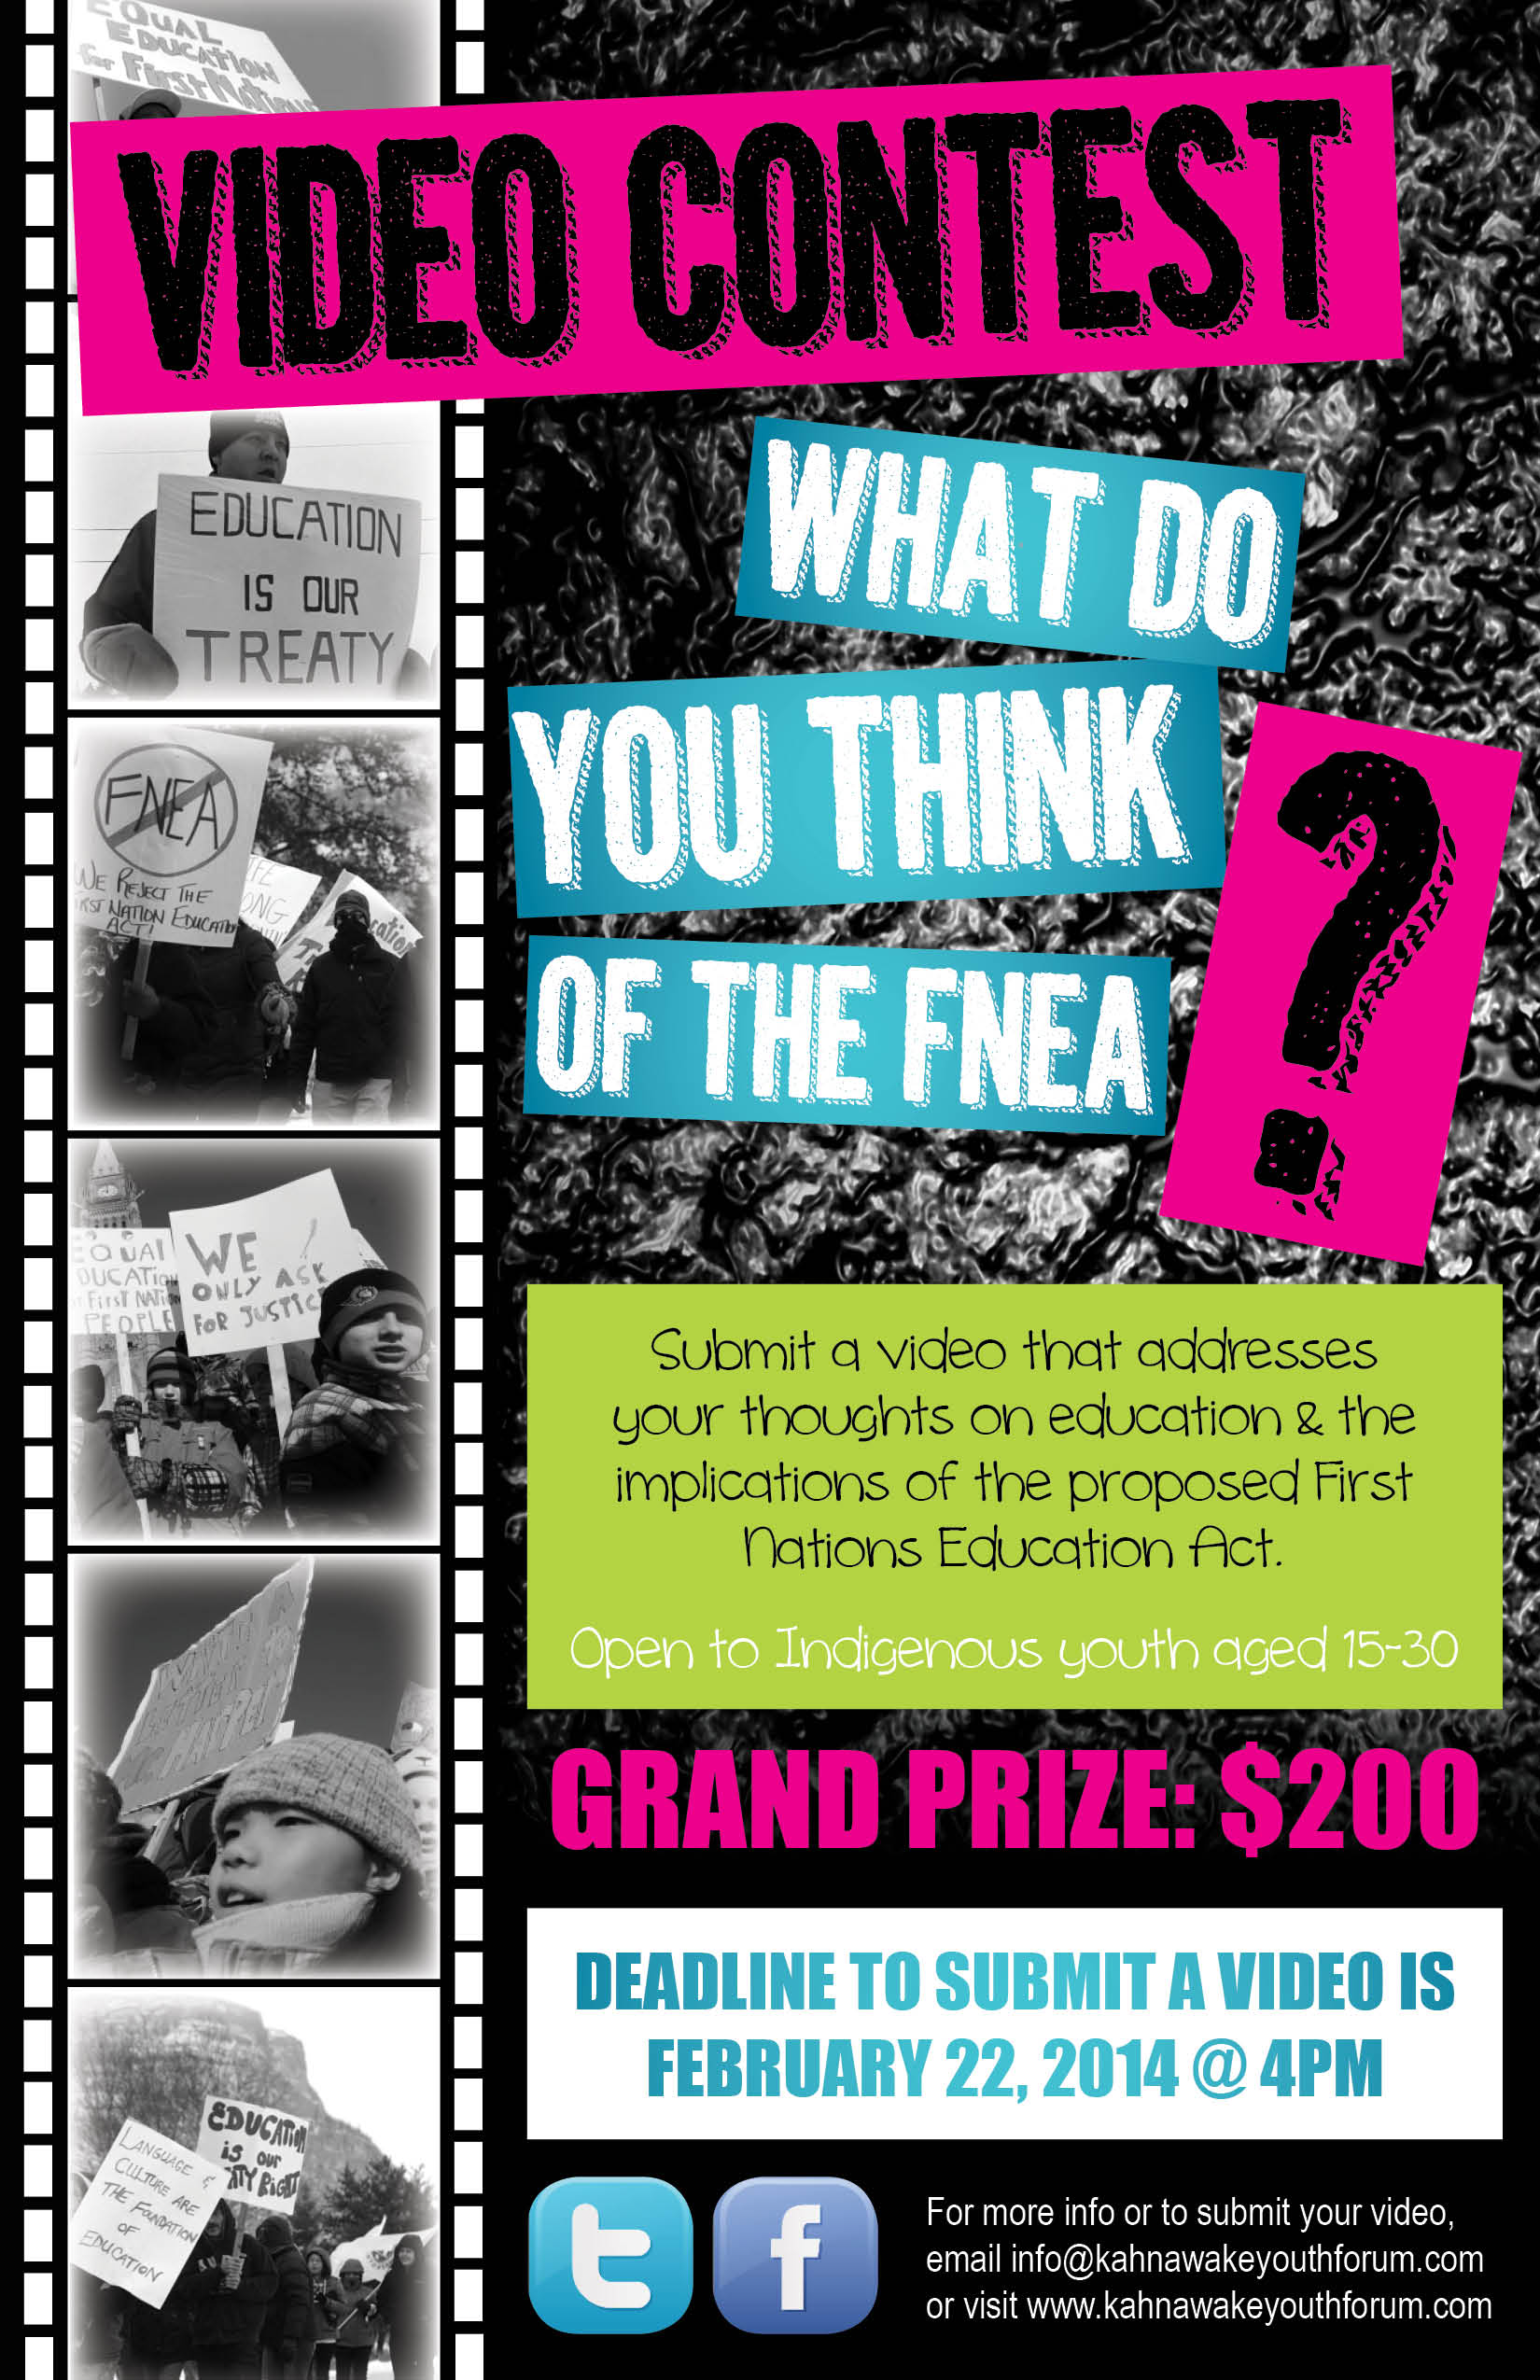 FNEA Video Contest DRAFT